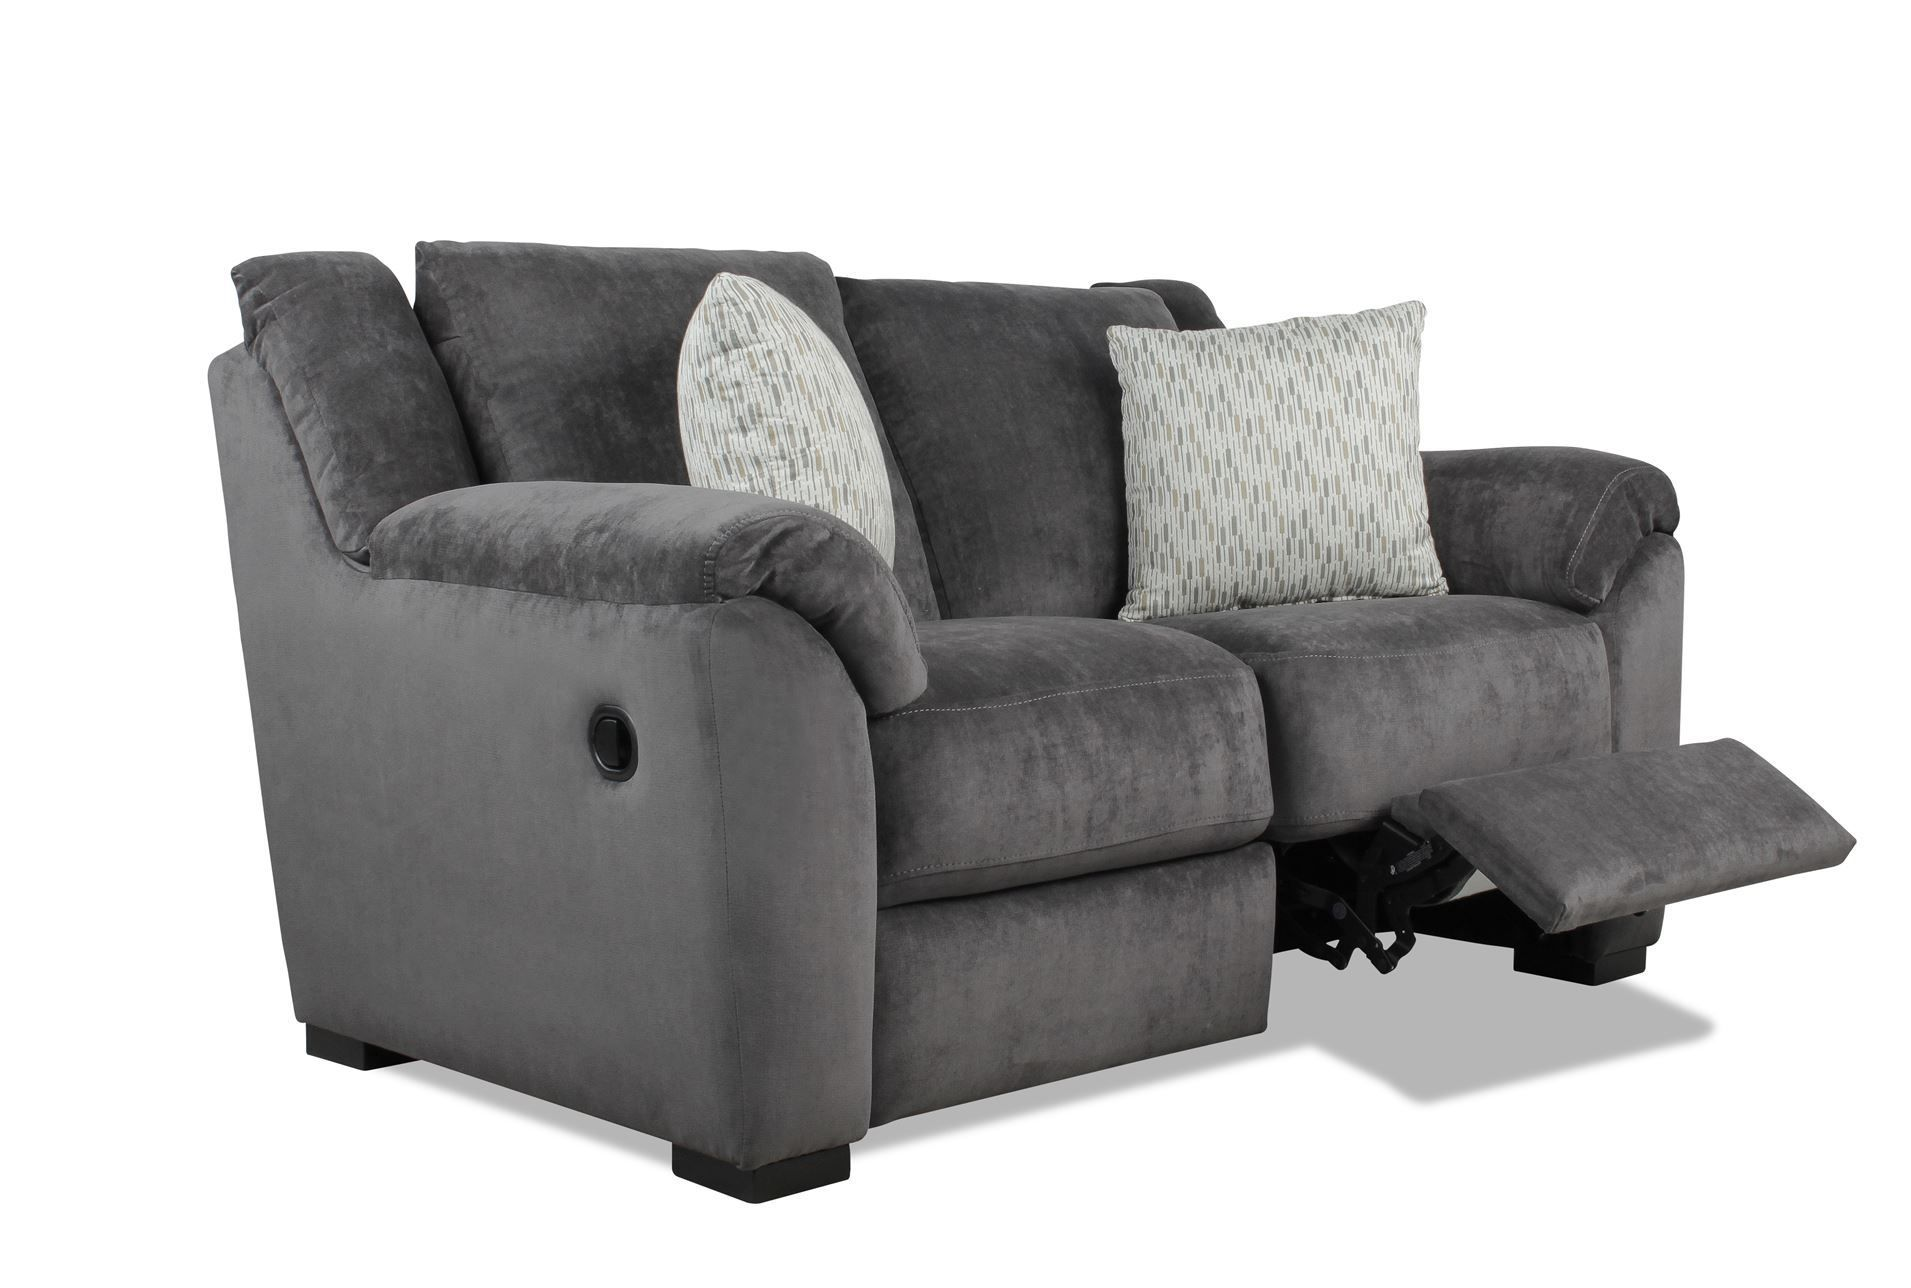 Tribecca Home Eland Black Bonded Leather Sofa Set Boconcept Sofas Uk Nova Fabric Double Reclining Loveseat Living Room